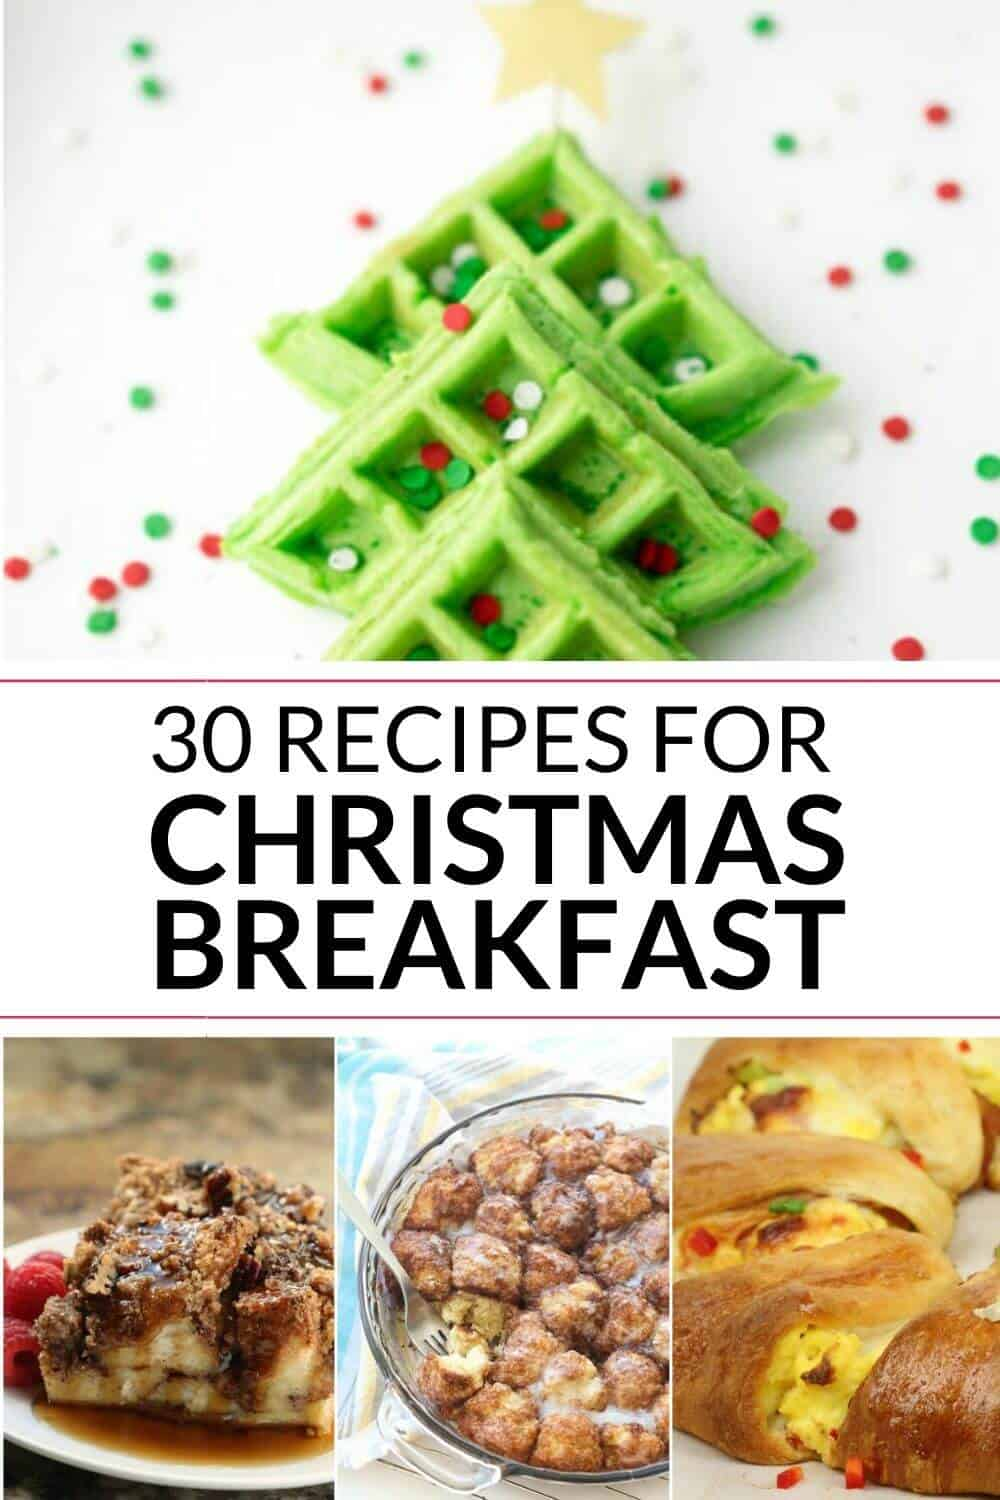 COLLECTION OF CHRISTMAS BREAKFAST RECIPES